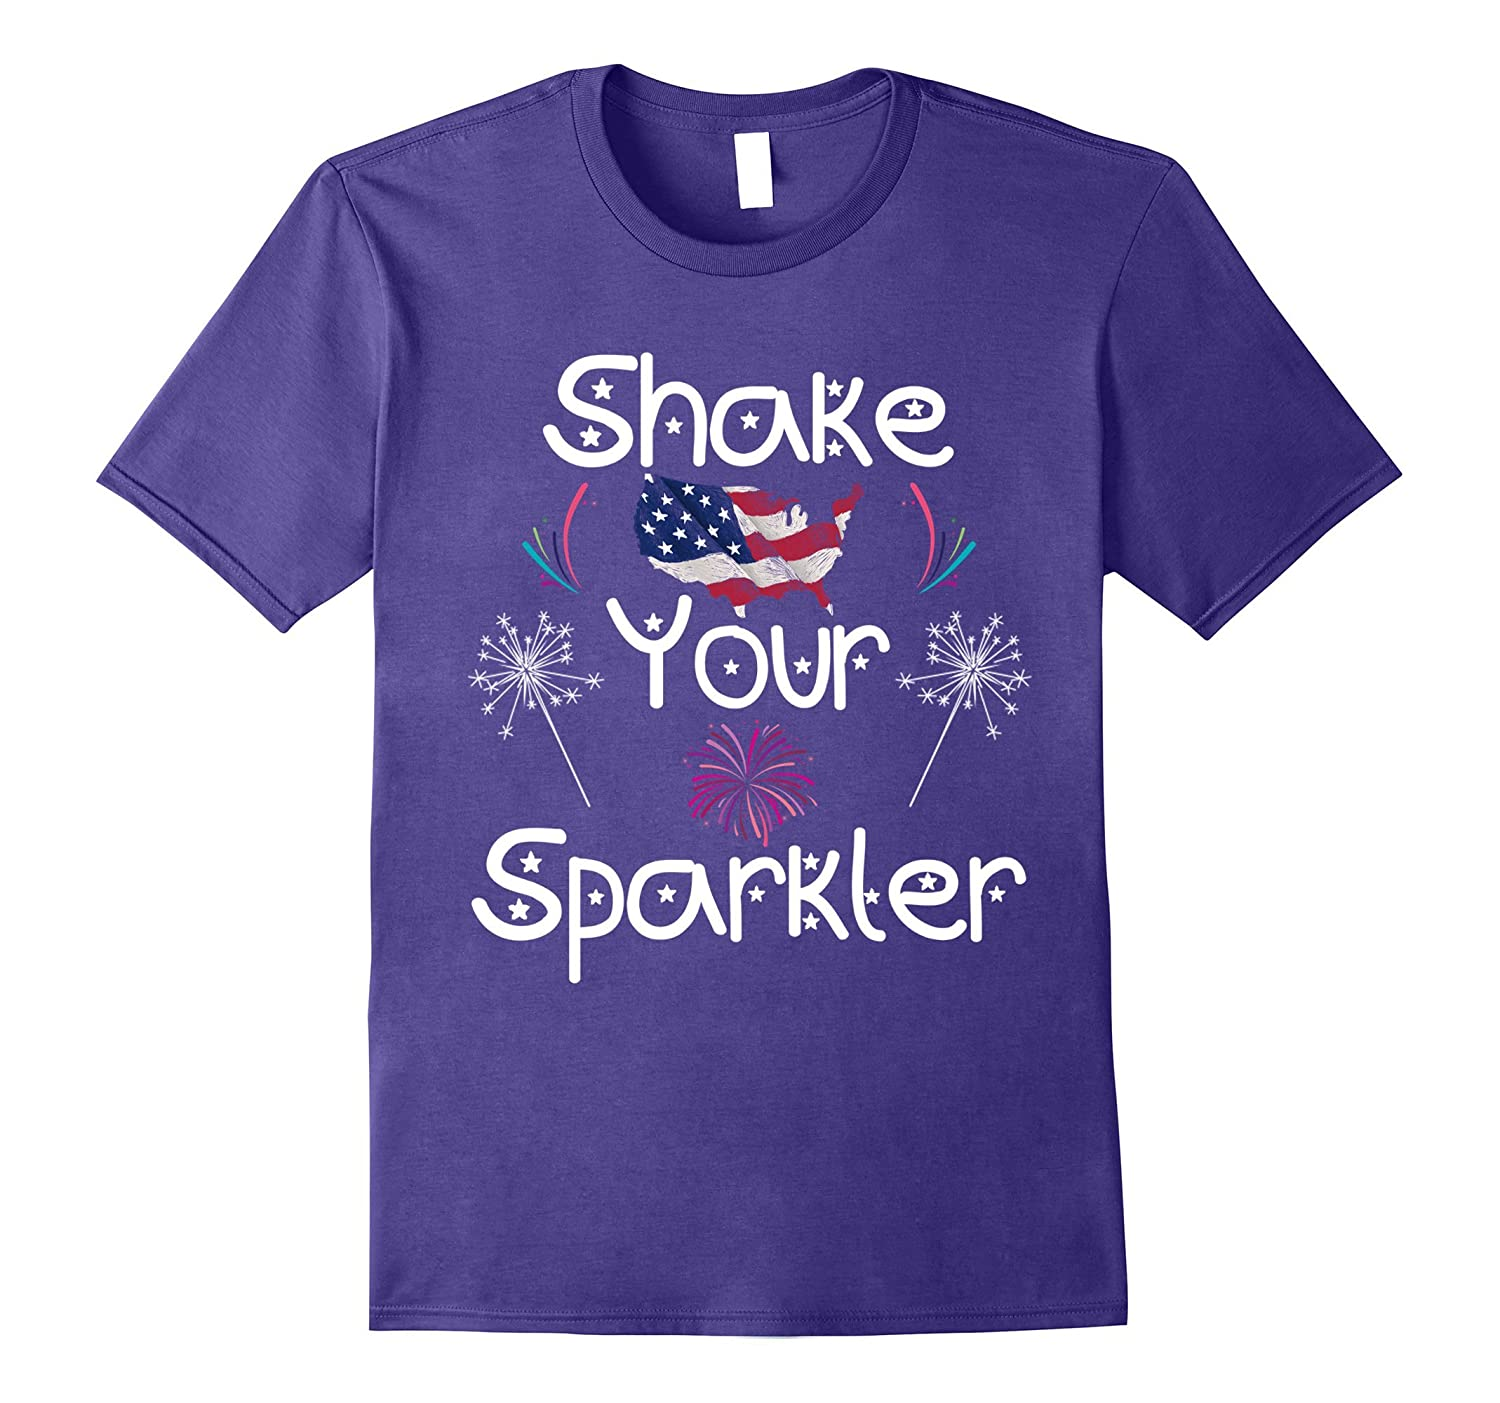 Awesome Tee For 4th Of July-Shake Your Sparkler T-shirt-Cute-PL